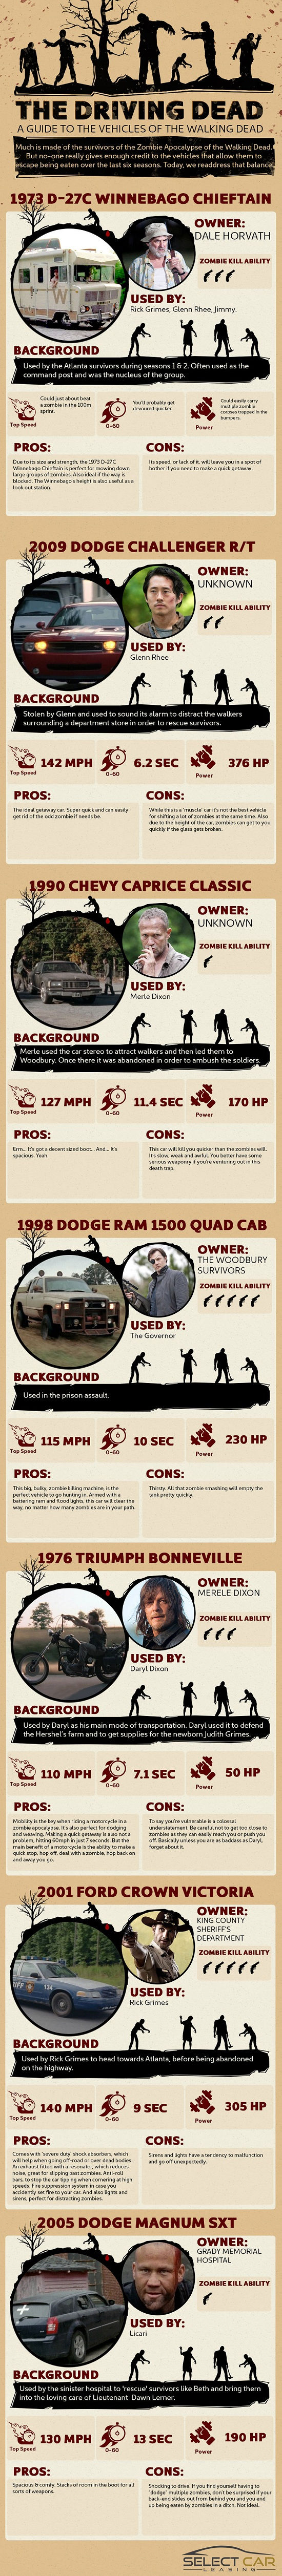 the driving dead infographic